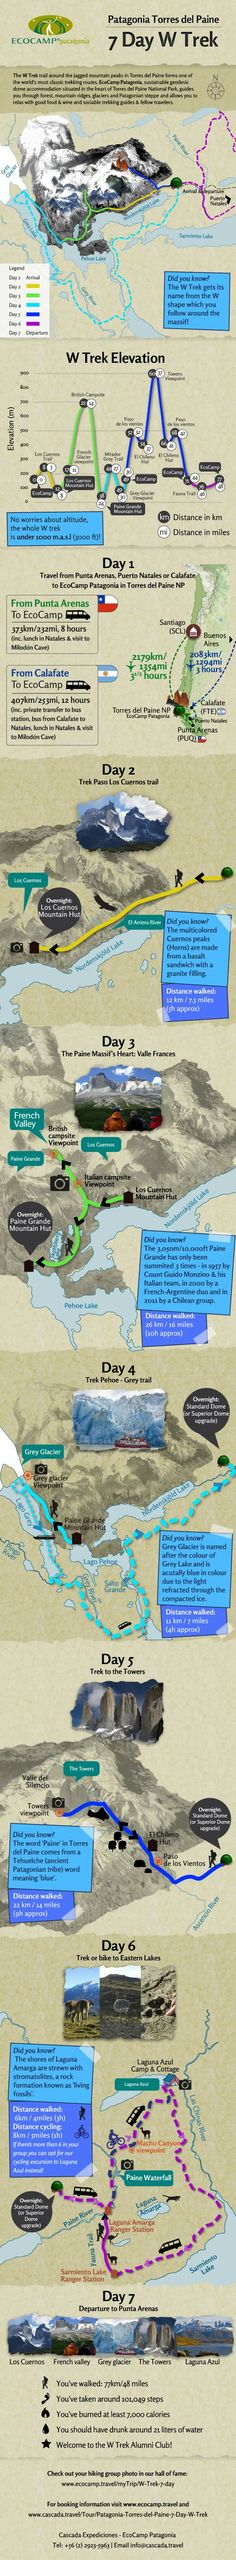 Patagonia Torres del Paine 7 Day W Trek Infographic. #Chile  (I will do this someday!)